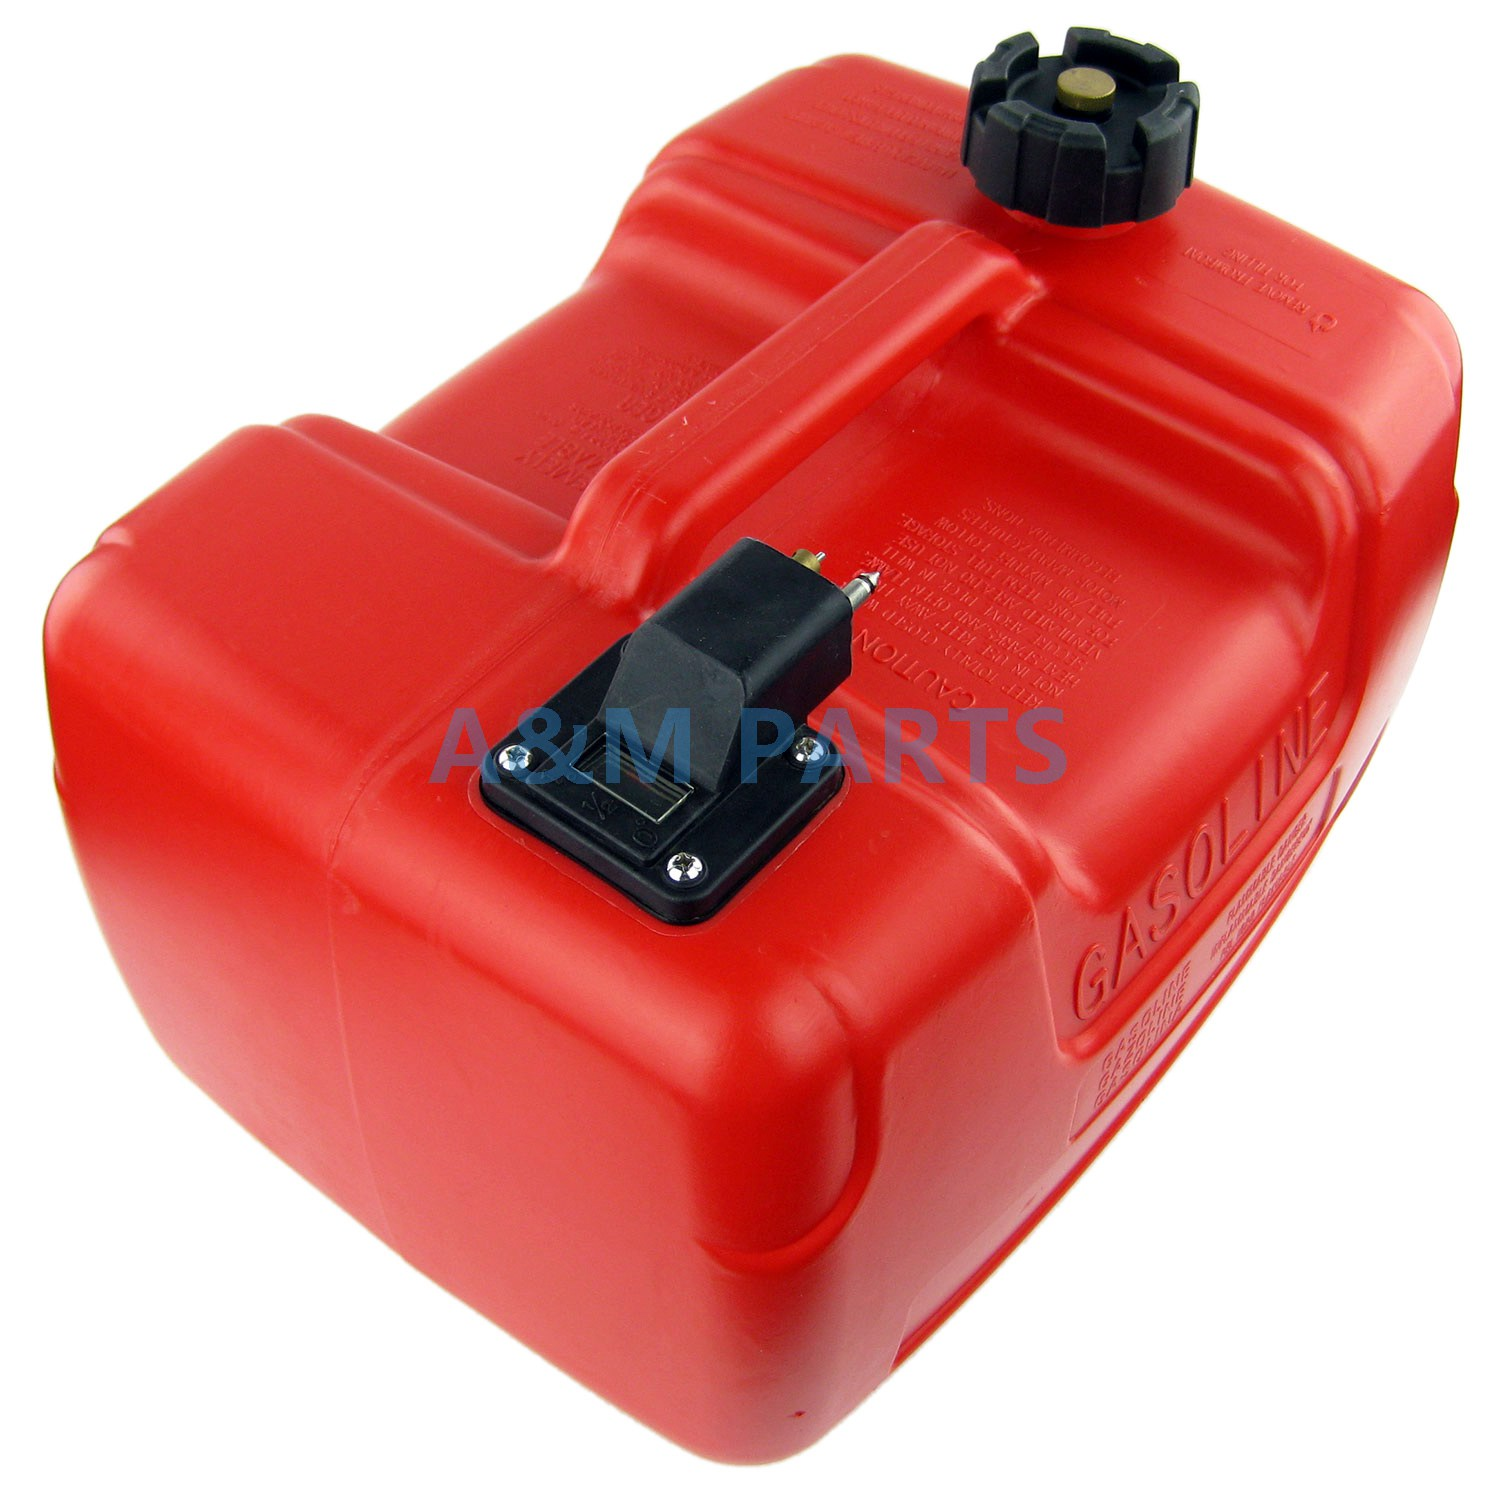 Portable Boat Fuel Tank 3.2 Gallon 12L Marine Outboard Fuel Tank With Fuel Hose Connector Fuel Gauge ложка кофейная труд вача миллениум 11 см